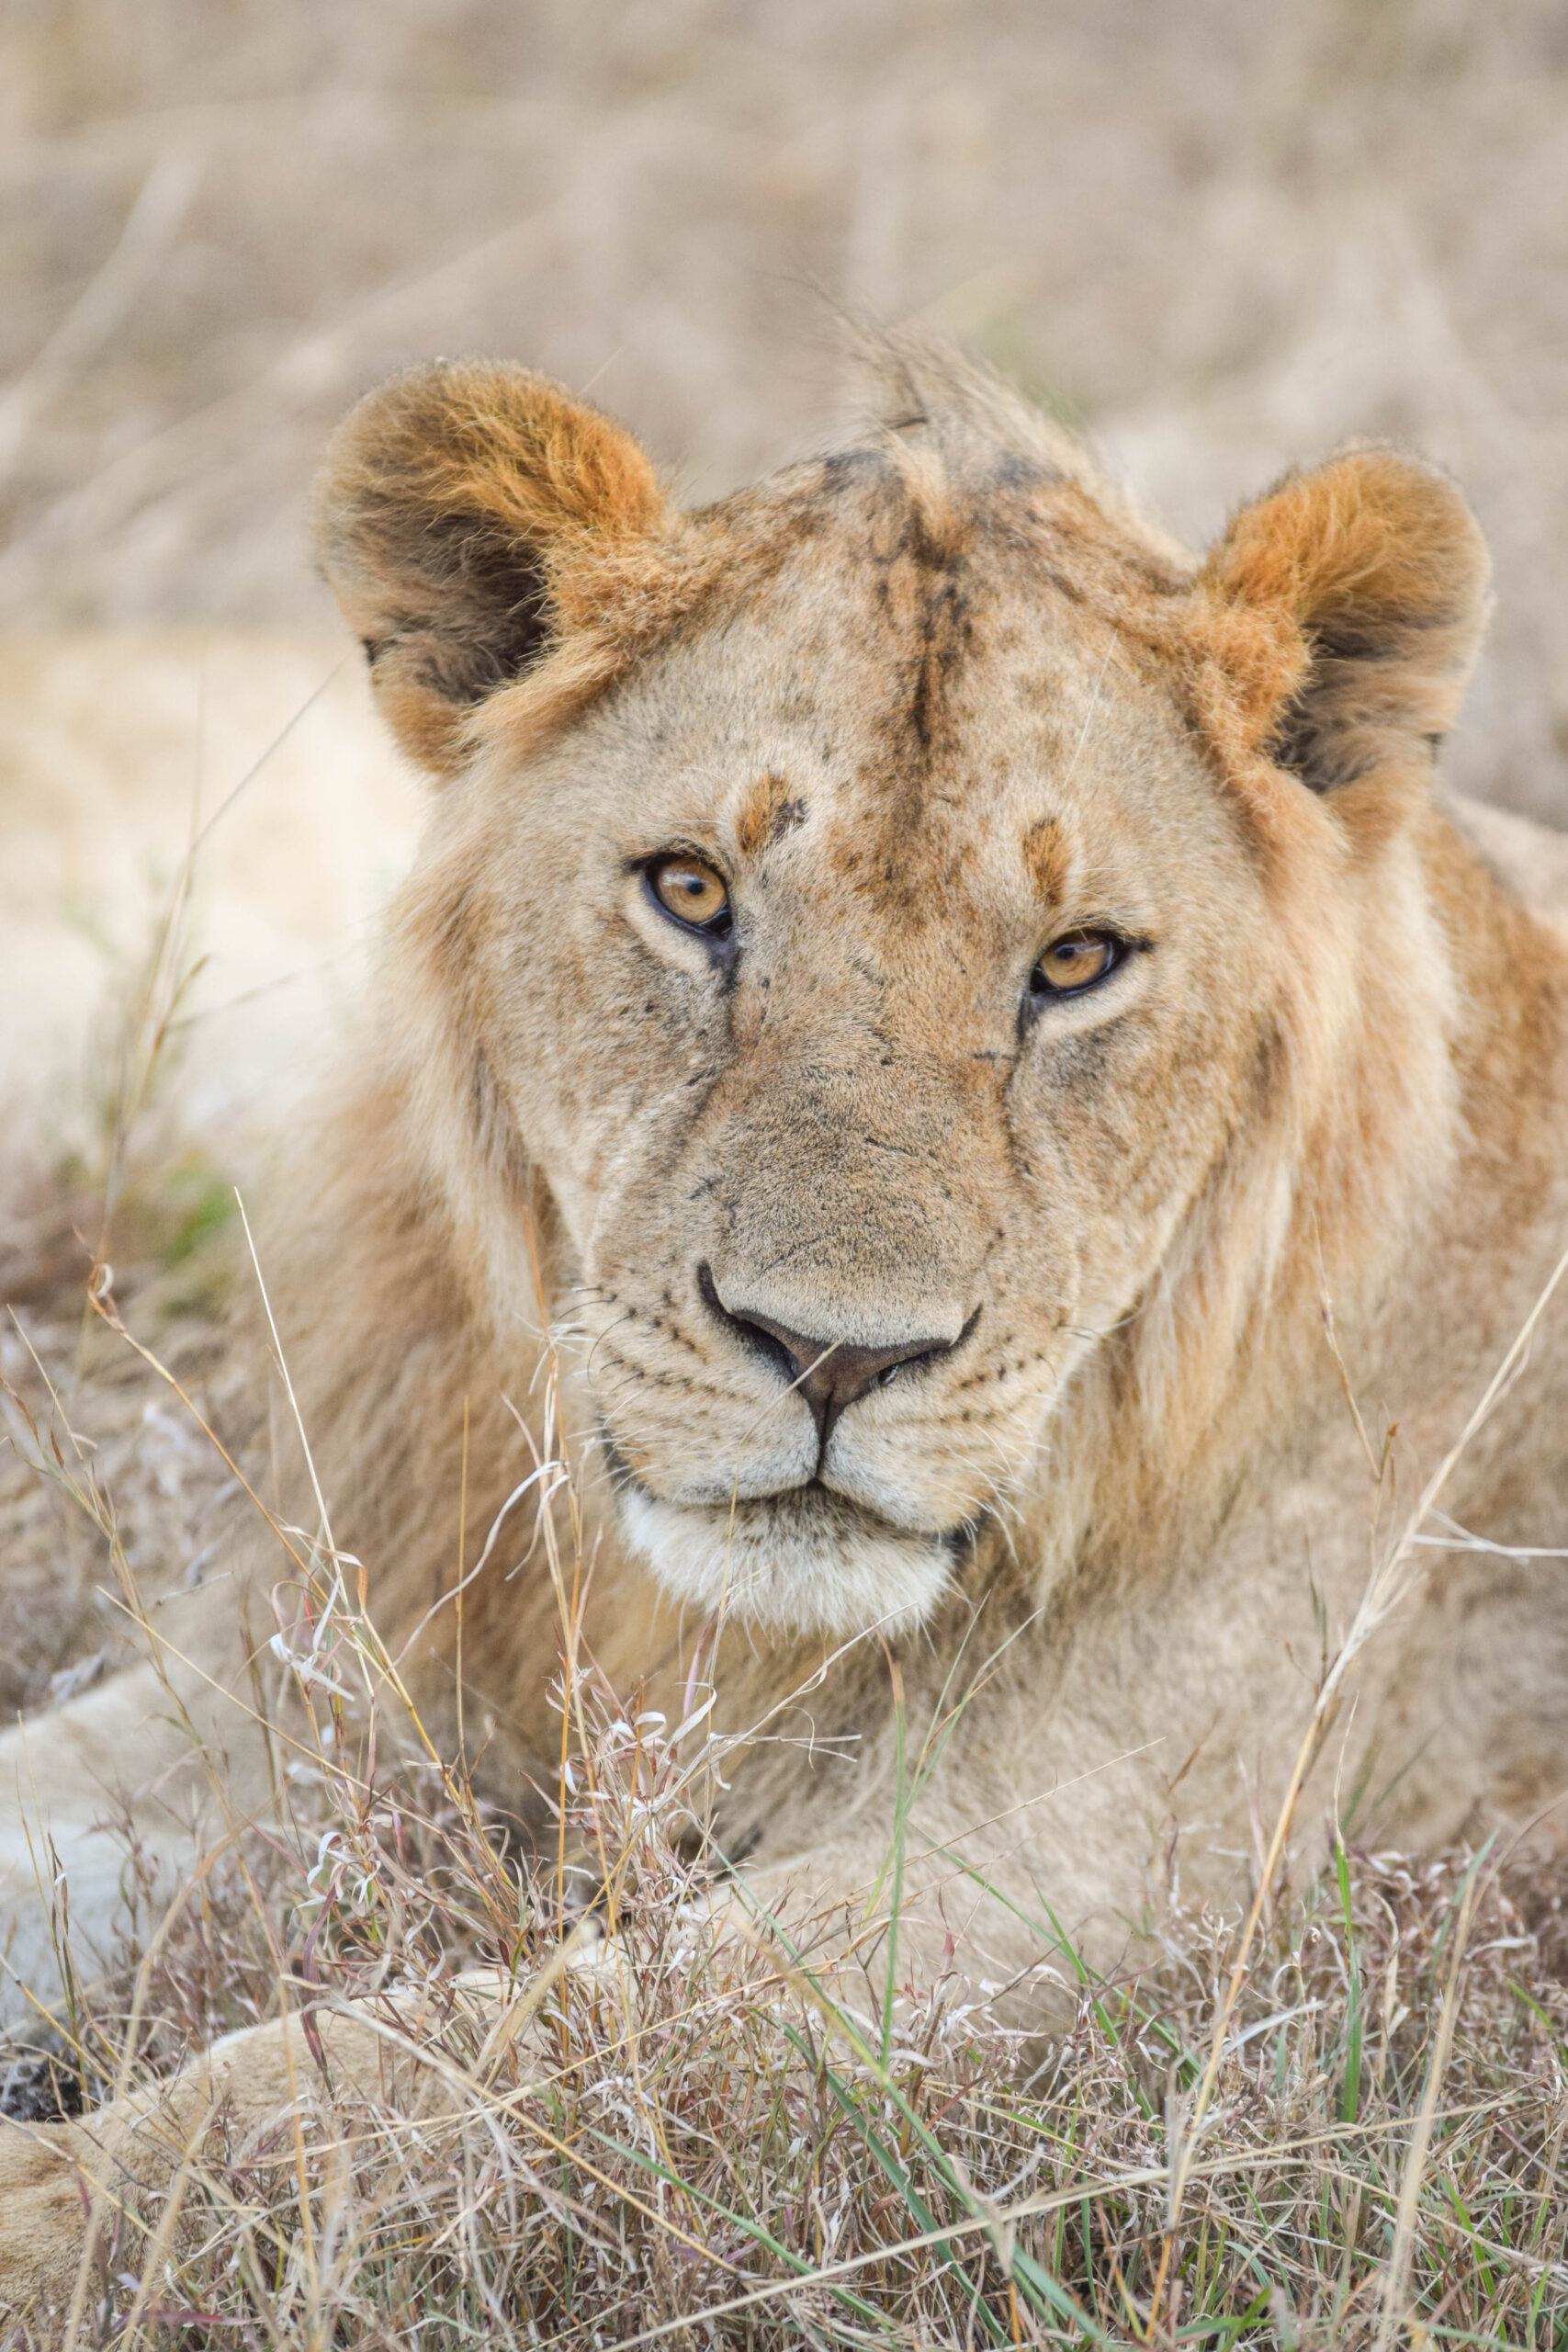 Lions In Kenya - Dreaming after a safari in Kenya? Here is my photo diary of the majestic lions (and lionesses) of Kenya! | Kenya Travel - African Wildlife - Safari Photography - Kenyan Wildlife